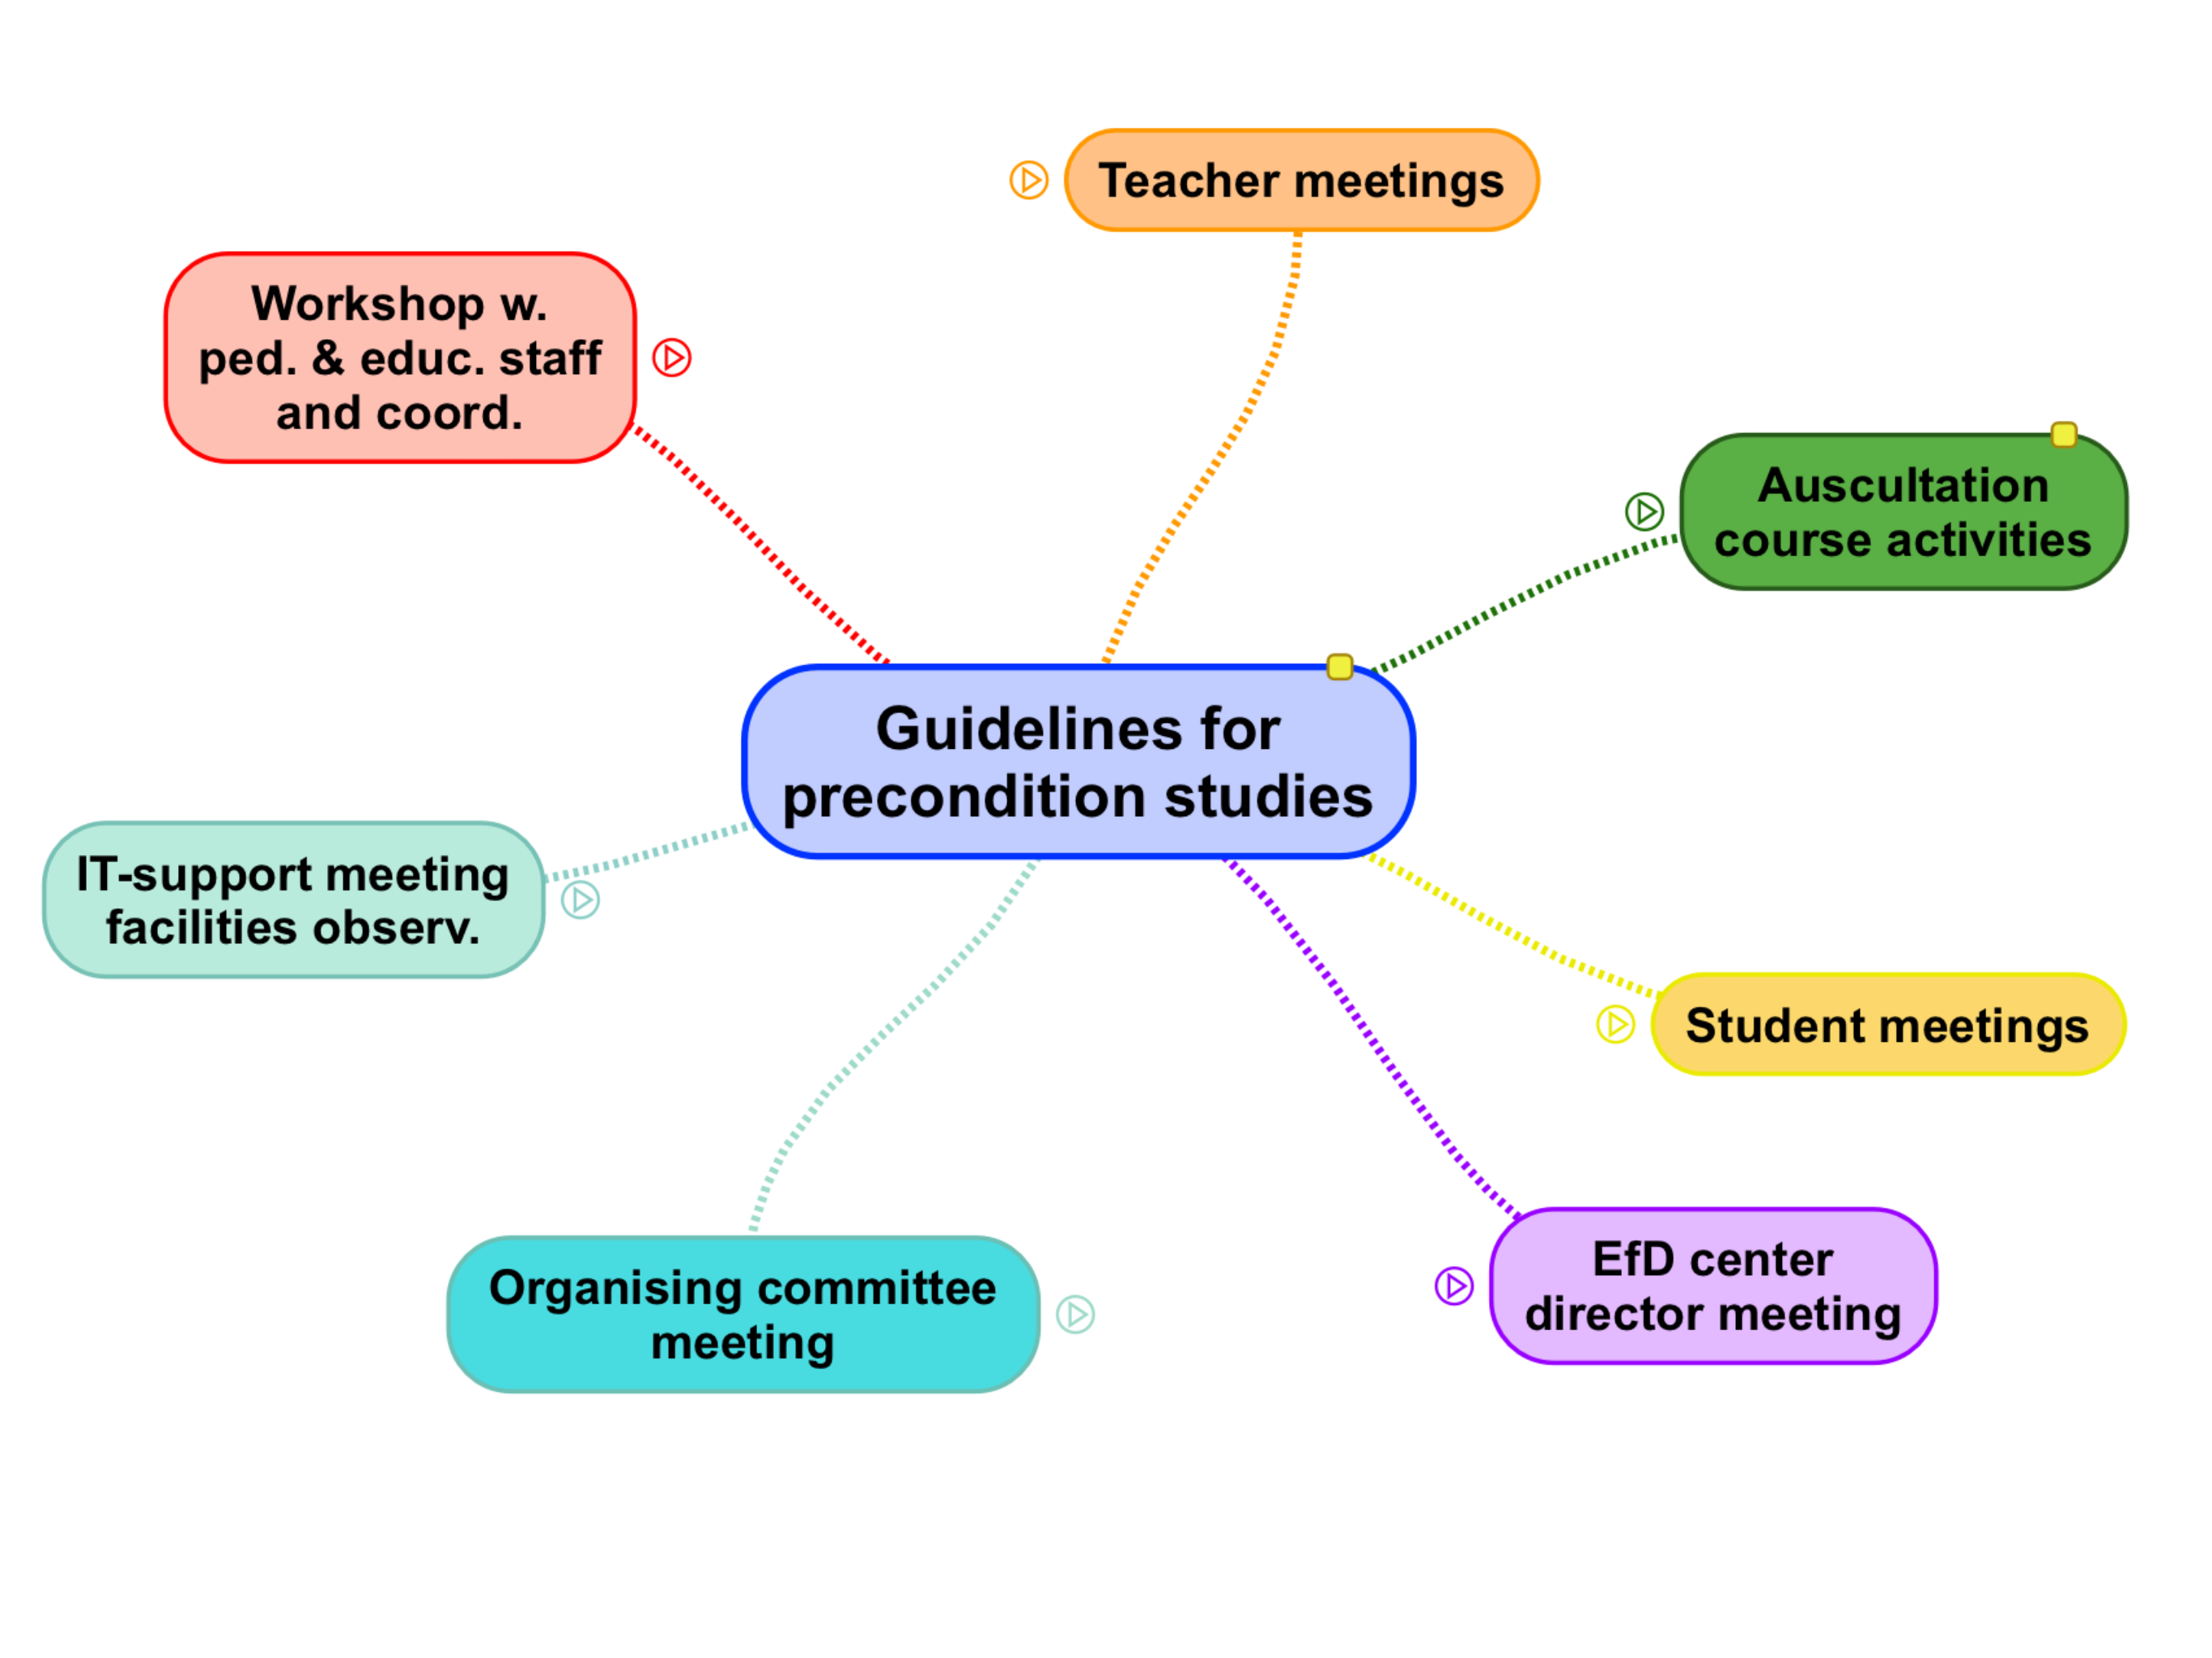 Guidlines for preconditions studies